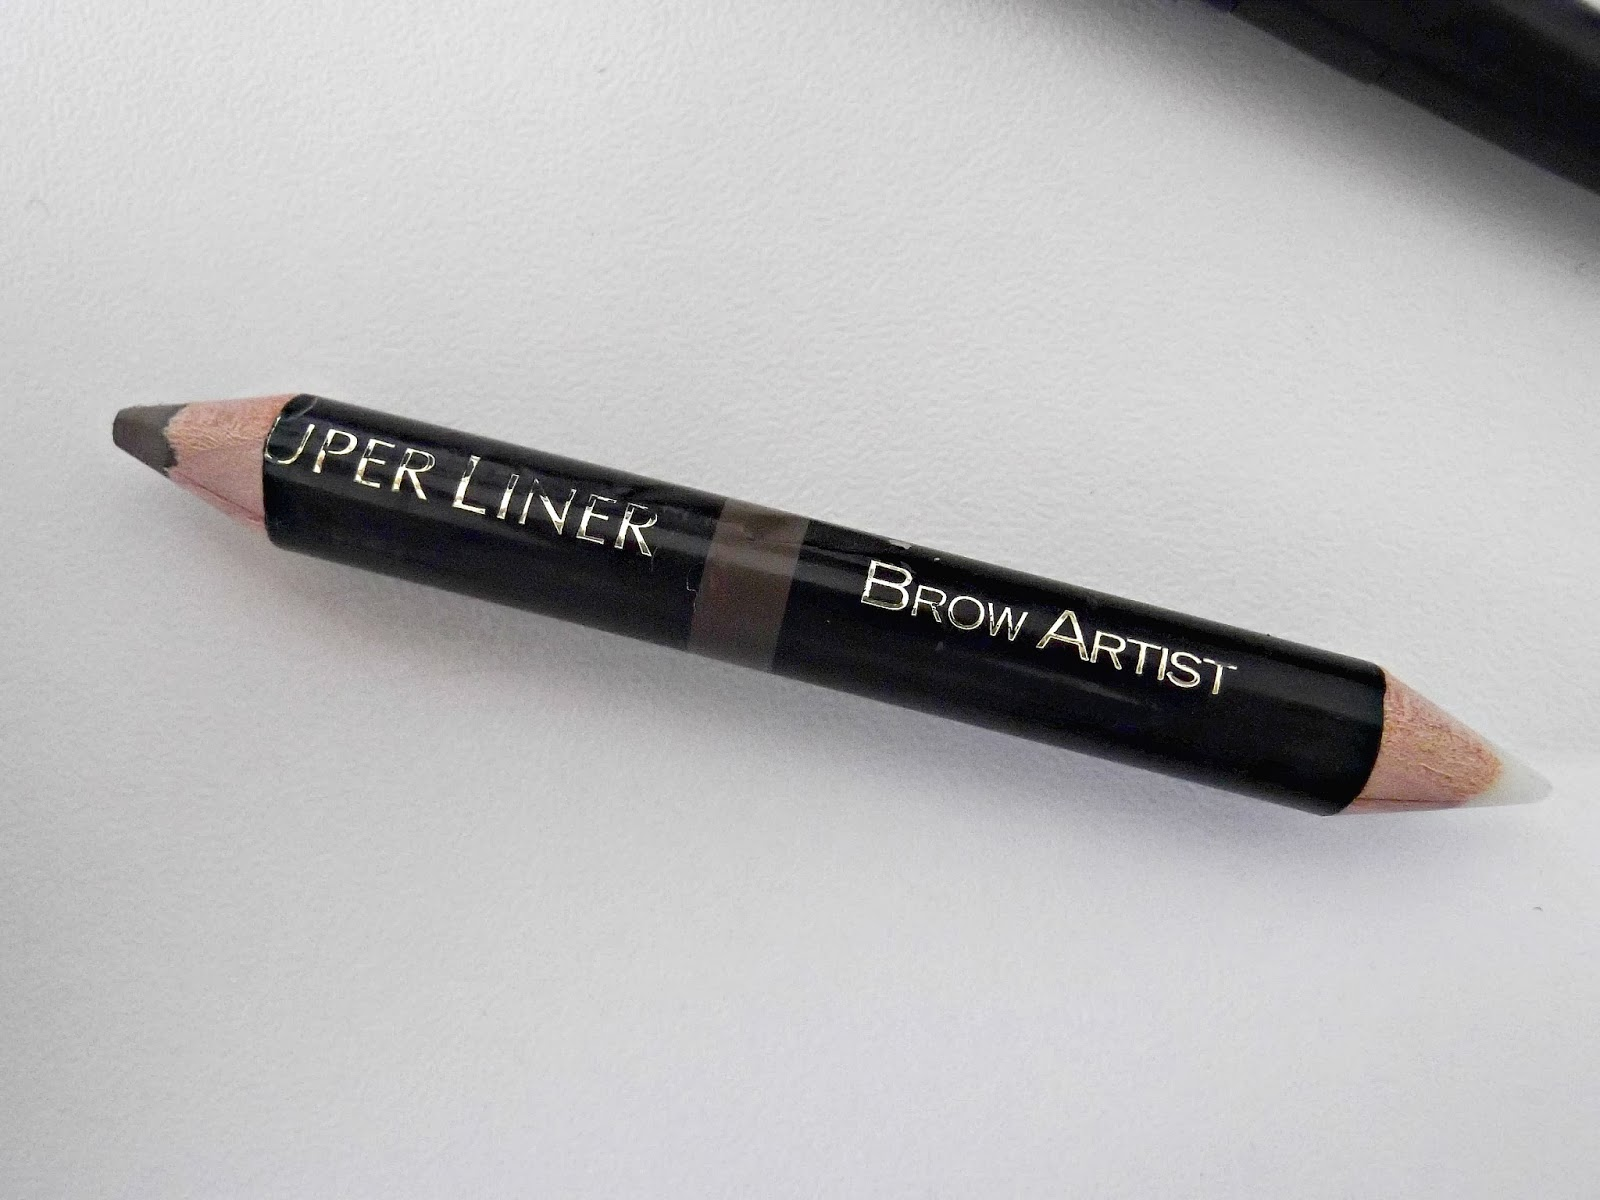 An image of L'Oreal Super Liner Brow Artist in Blonde